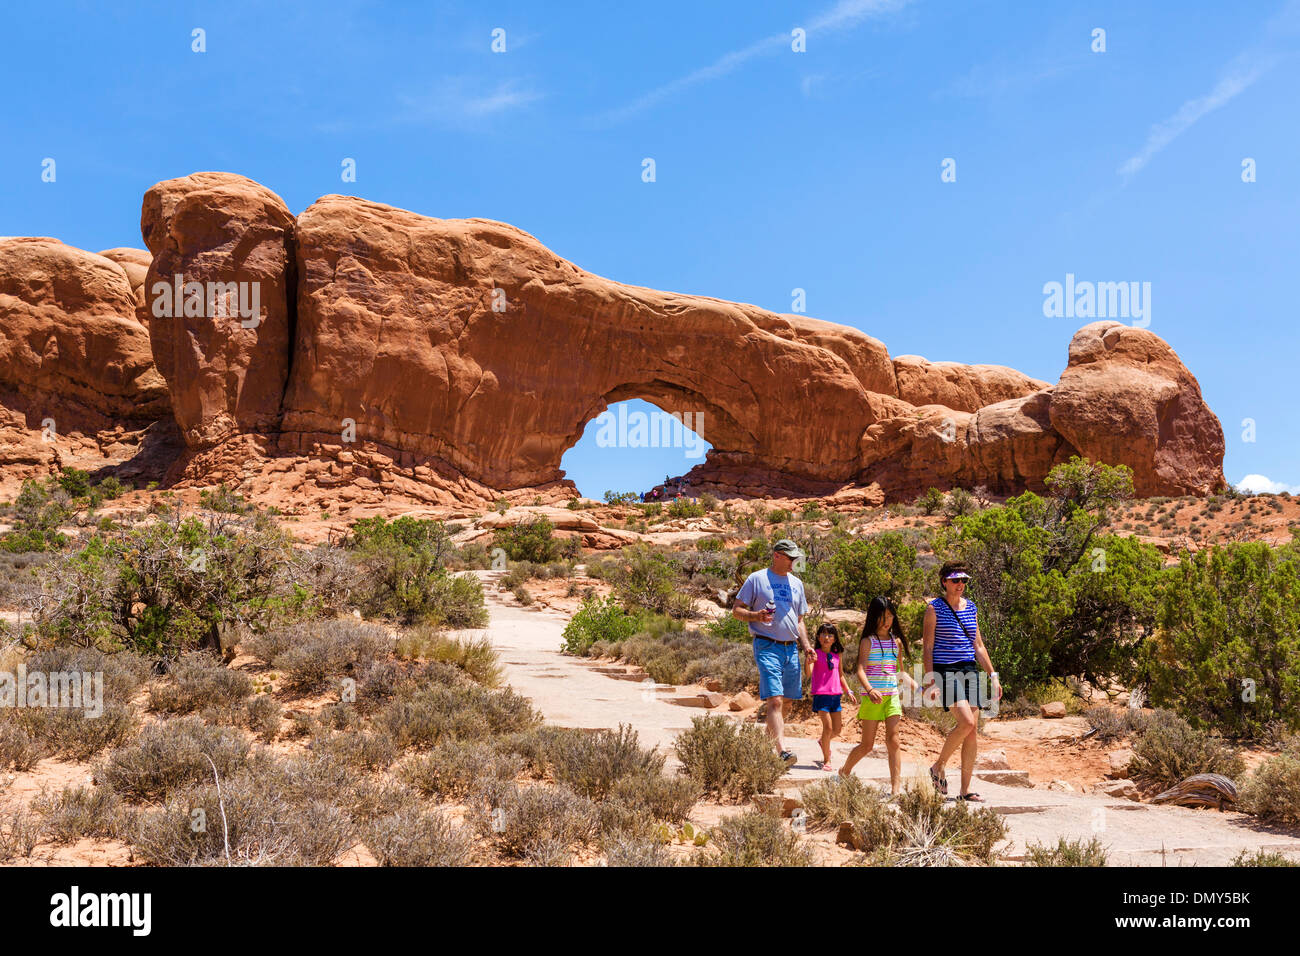 Tourists at North Window arch, The Windows Section, Arches National Park, Utah, USA - Stock Image